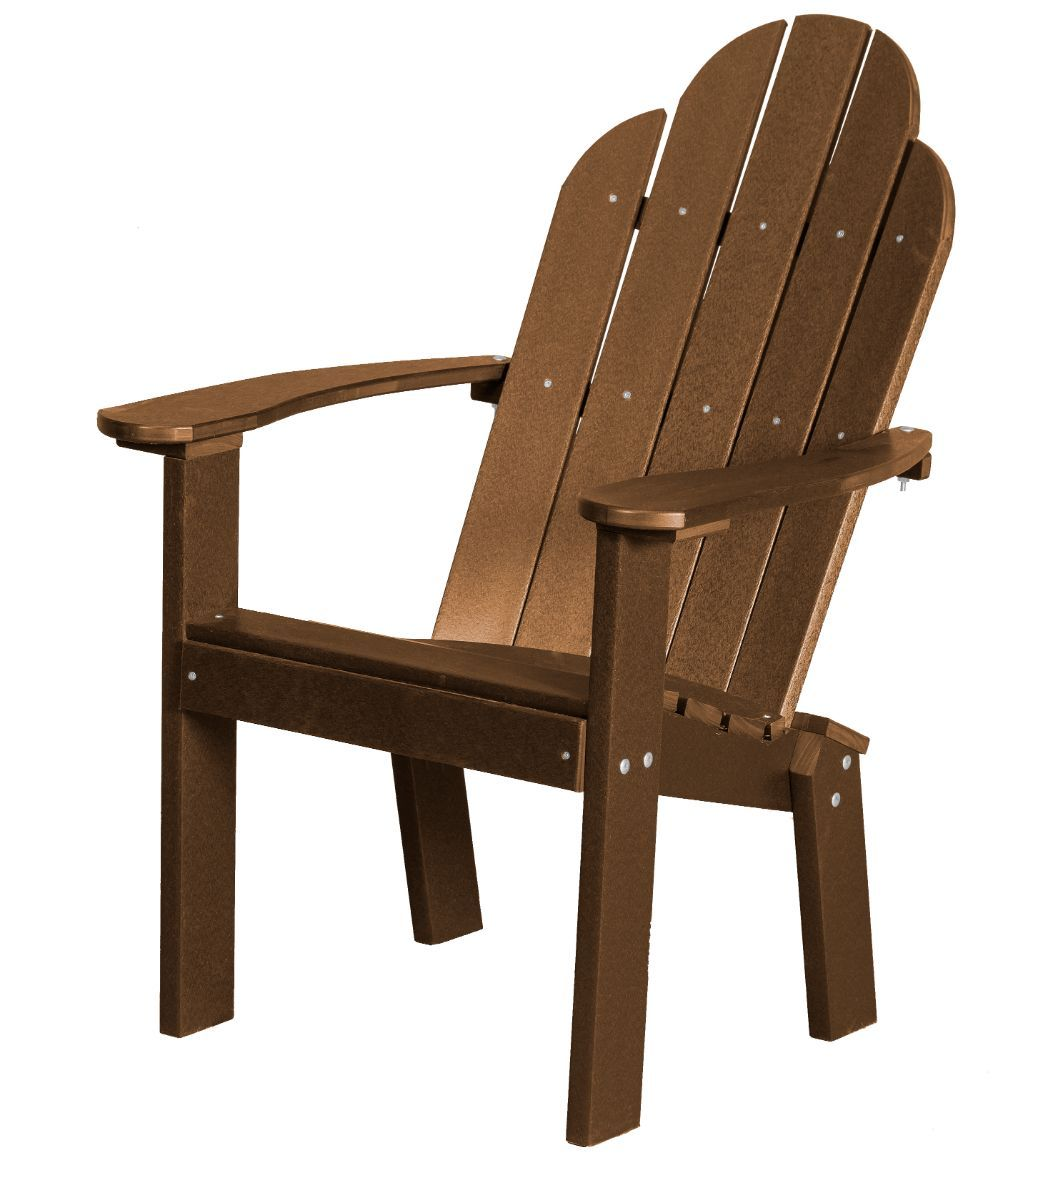 Tudor Brown Odessa Outdoor Dining Chair